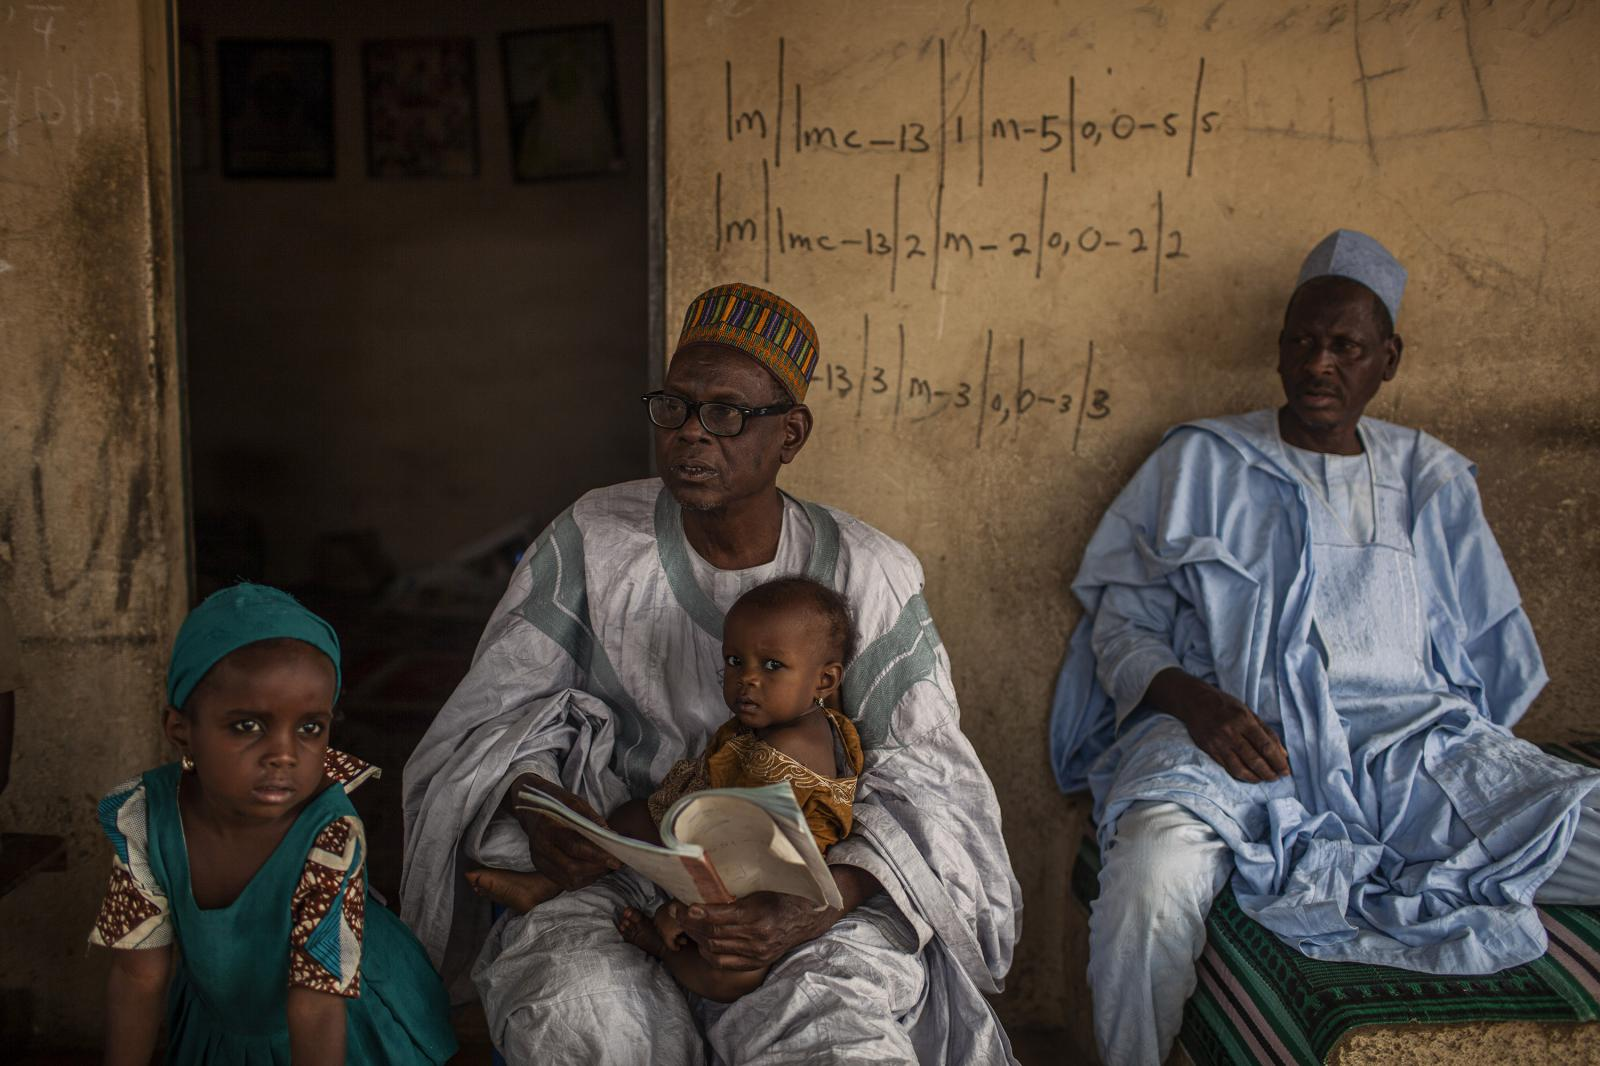 A nigerian family waits for the polio vaccinator team in Kano. Nigeria 2014. Nigeria is the last country in Africa to have witnessed a case of polio - in Borno state, in the north-east. Outside of Nigeria, the last case on the continent was in the Puntland region of Somalia, in 2014. Diego Ibarra Sánchez